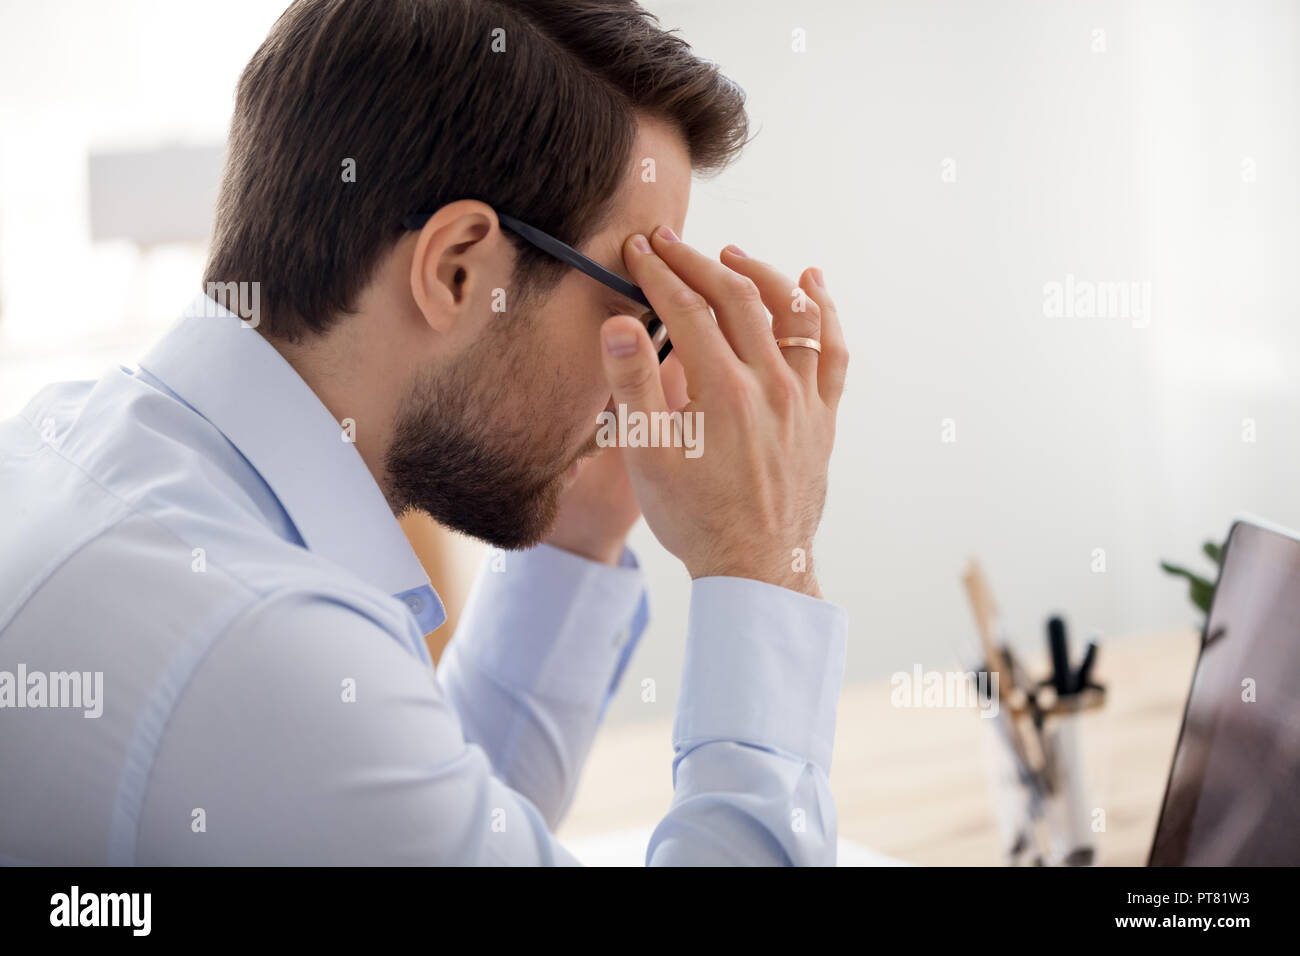 Fatigued business man with headache working in office - Stock Image